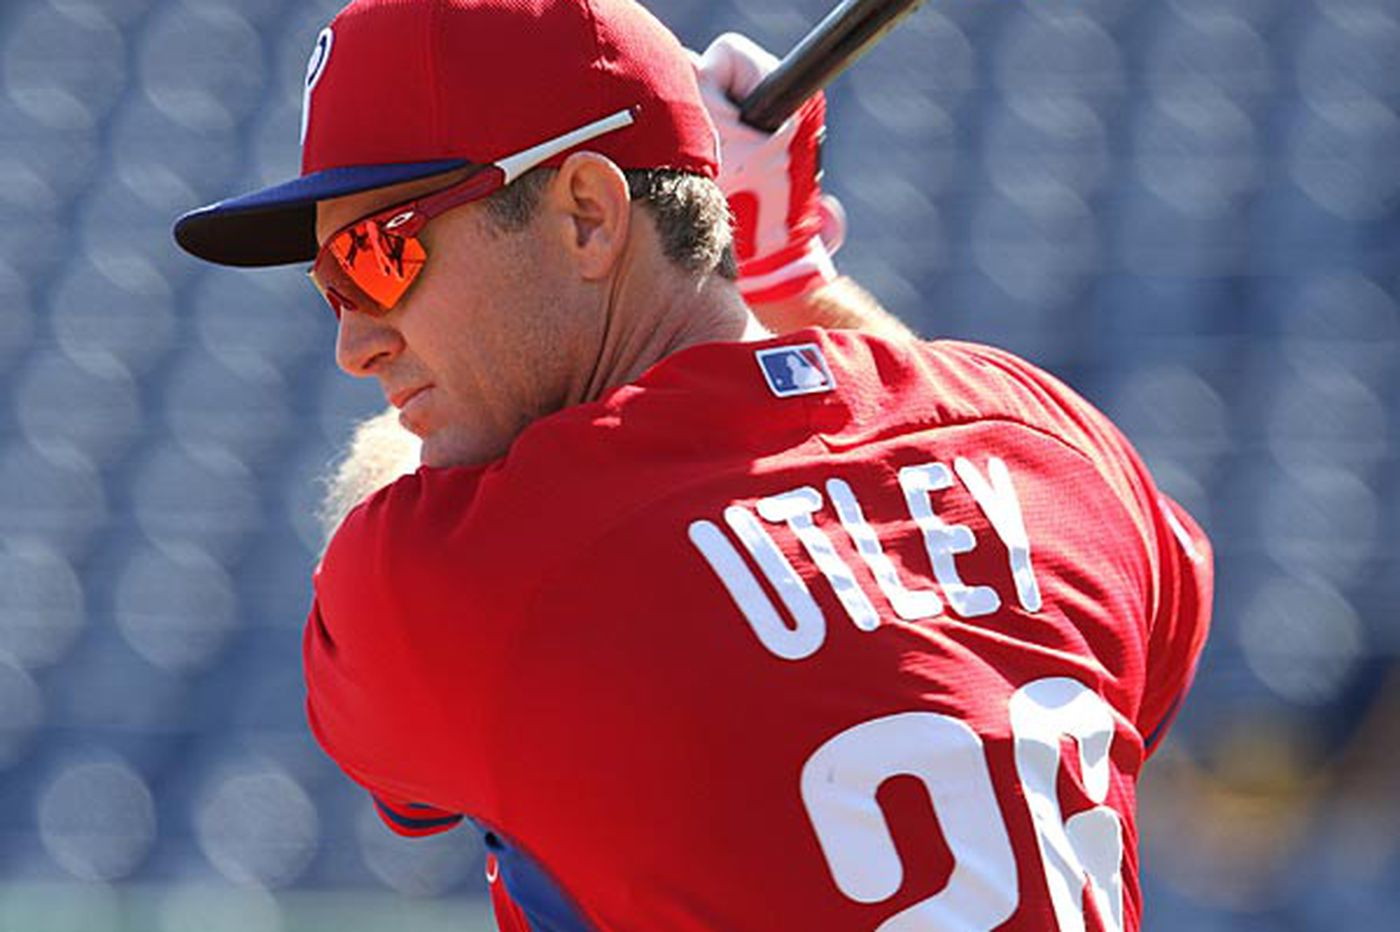 Utley battles age, injuries but remains a Phillies mainstay